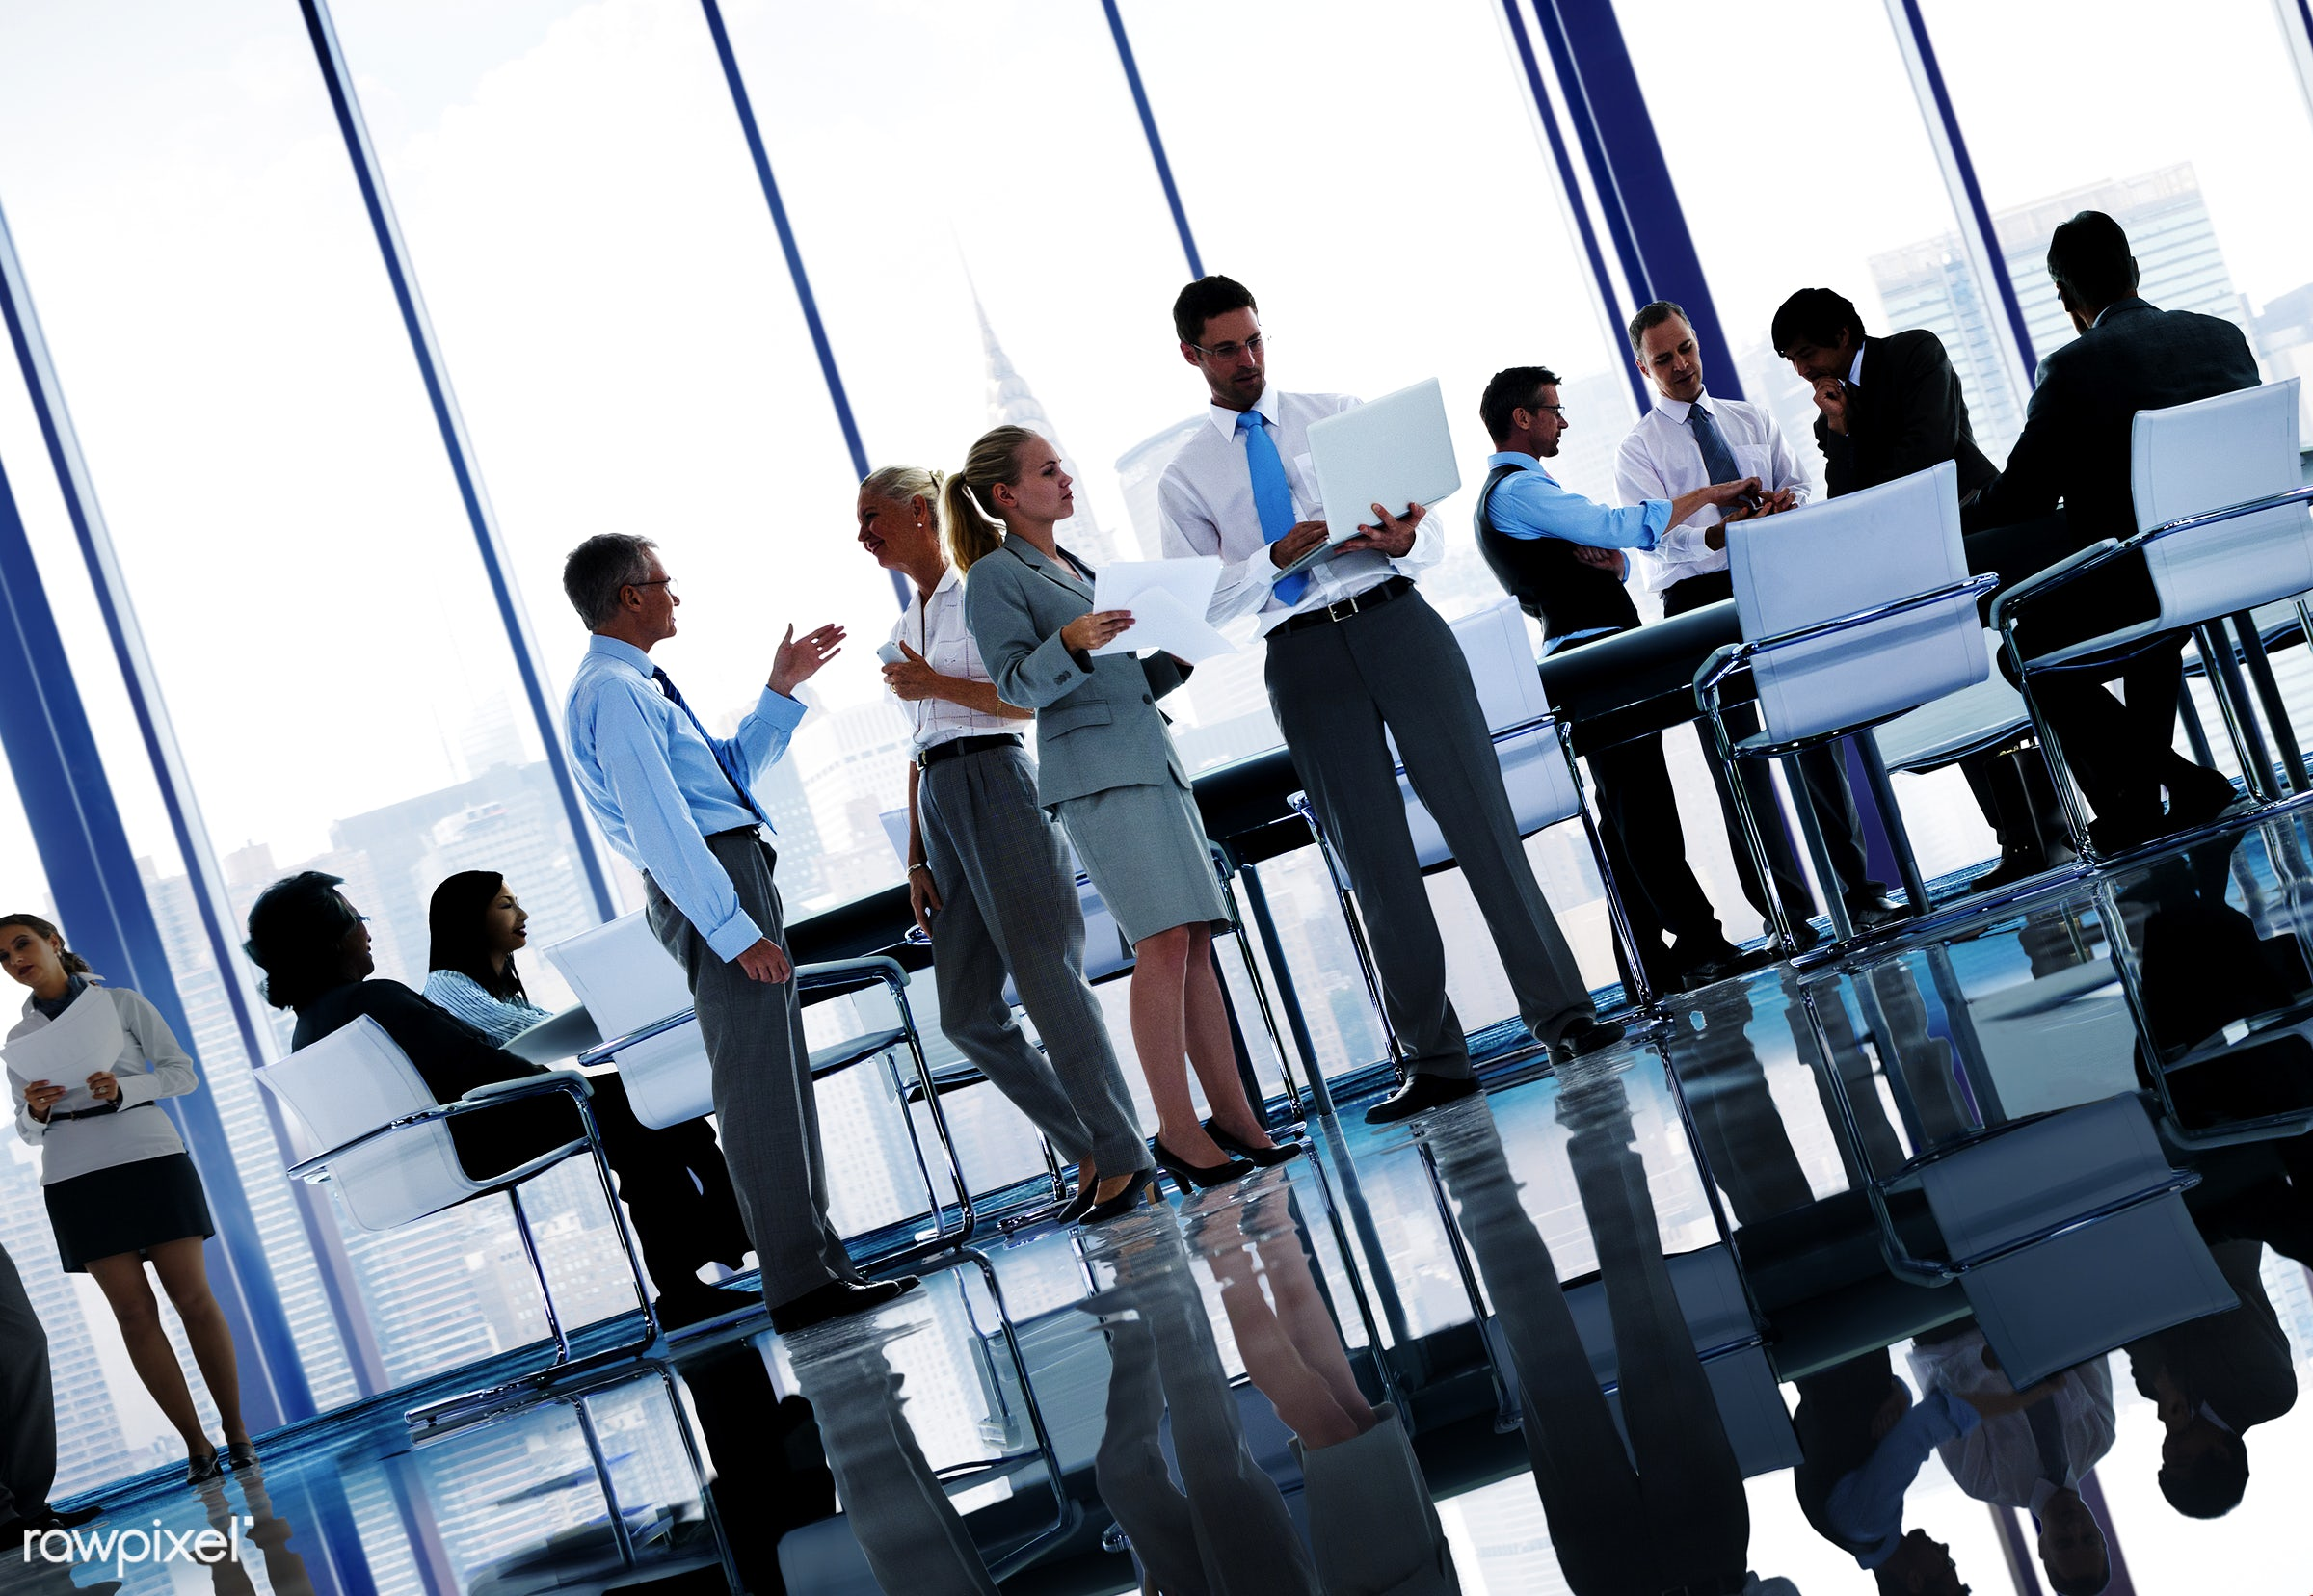 asian ethnicity, boardroom, brainstorming, building, business, business people, businessmen, businesswomen, city, cityscape...